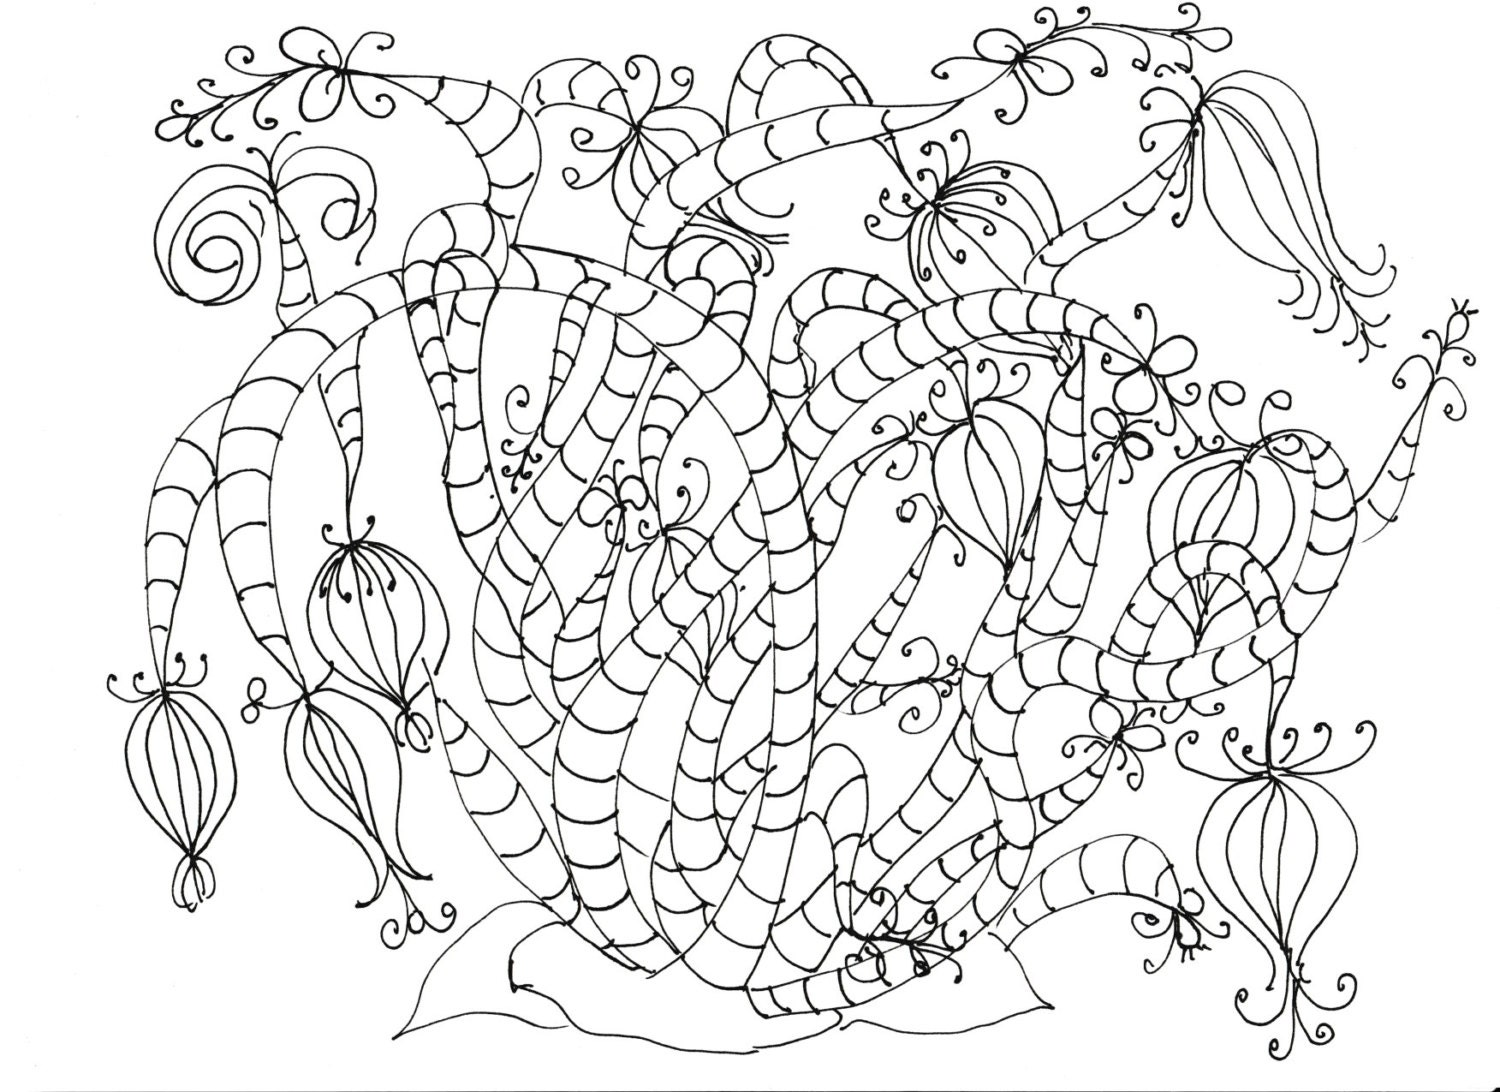 adult coloring pages flowers plants garden - Adult Coloring Pages Flowers